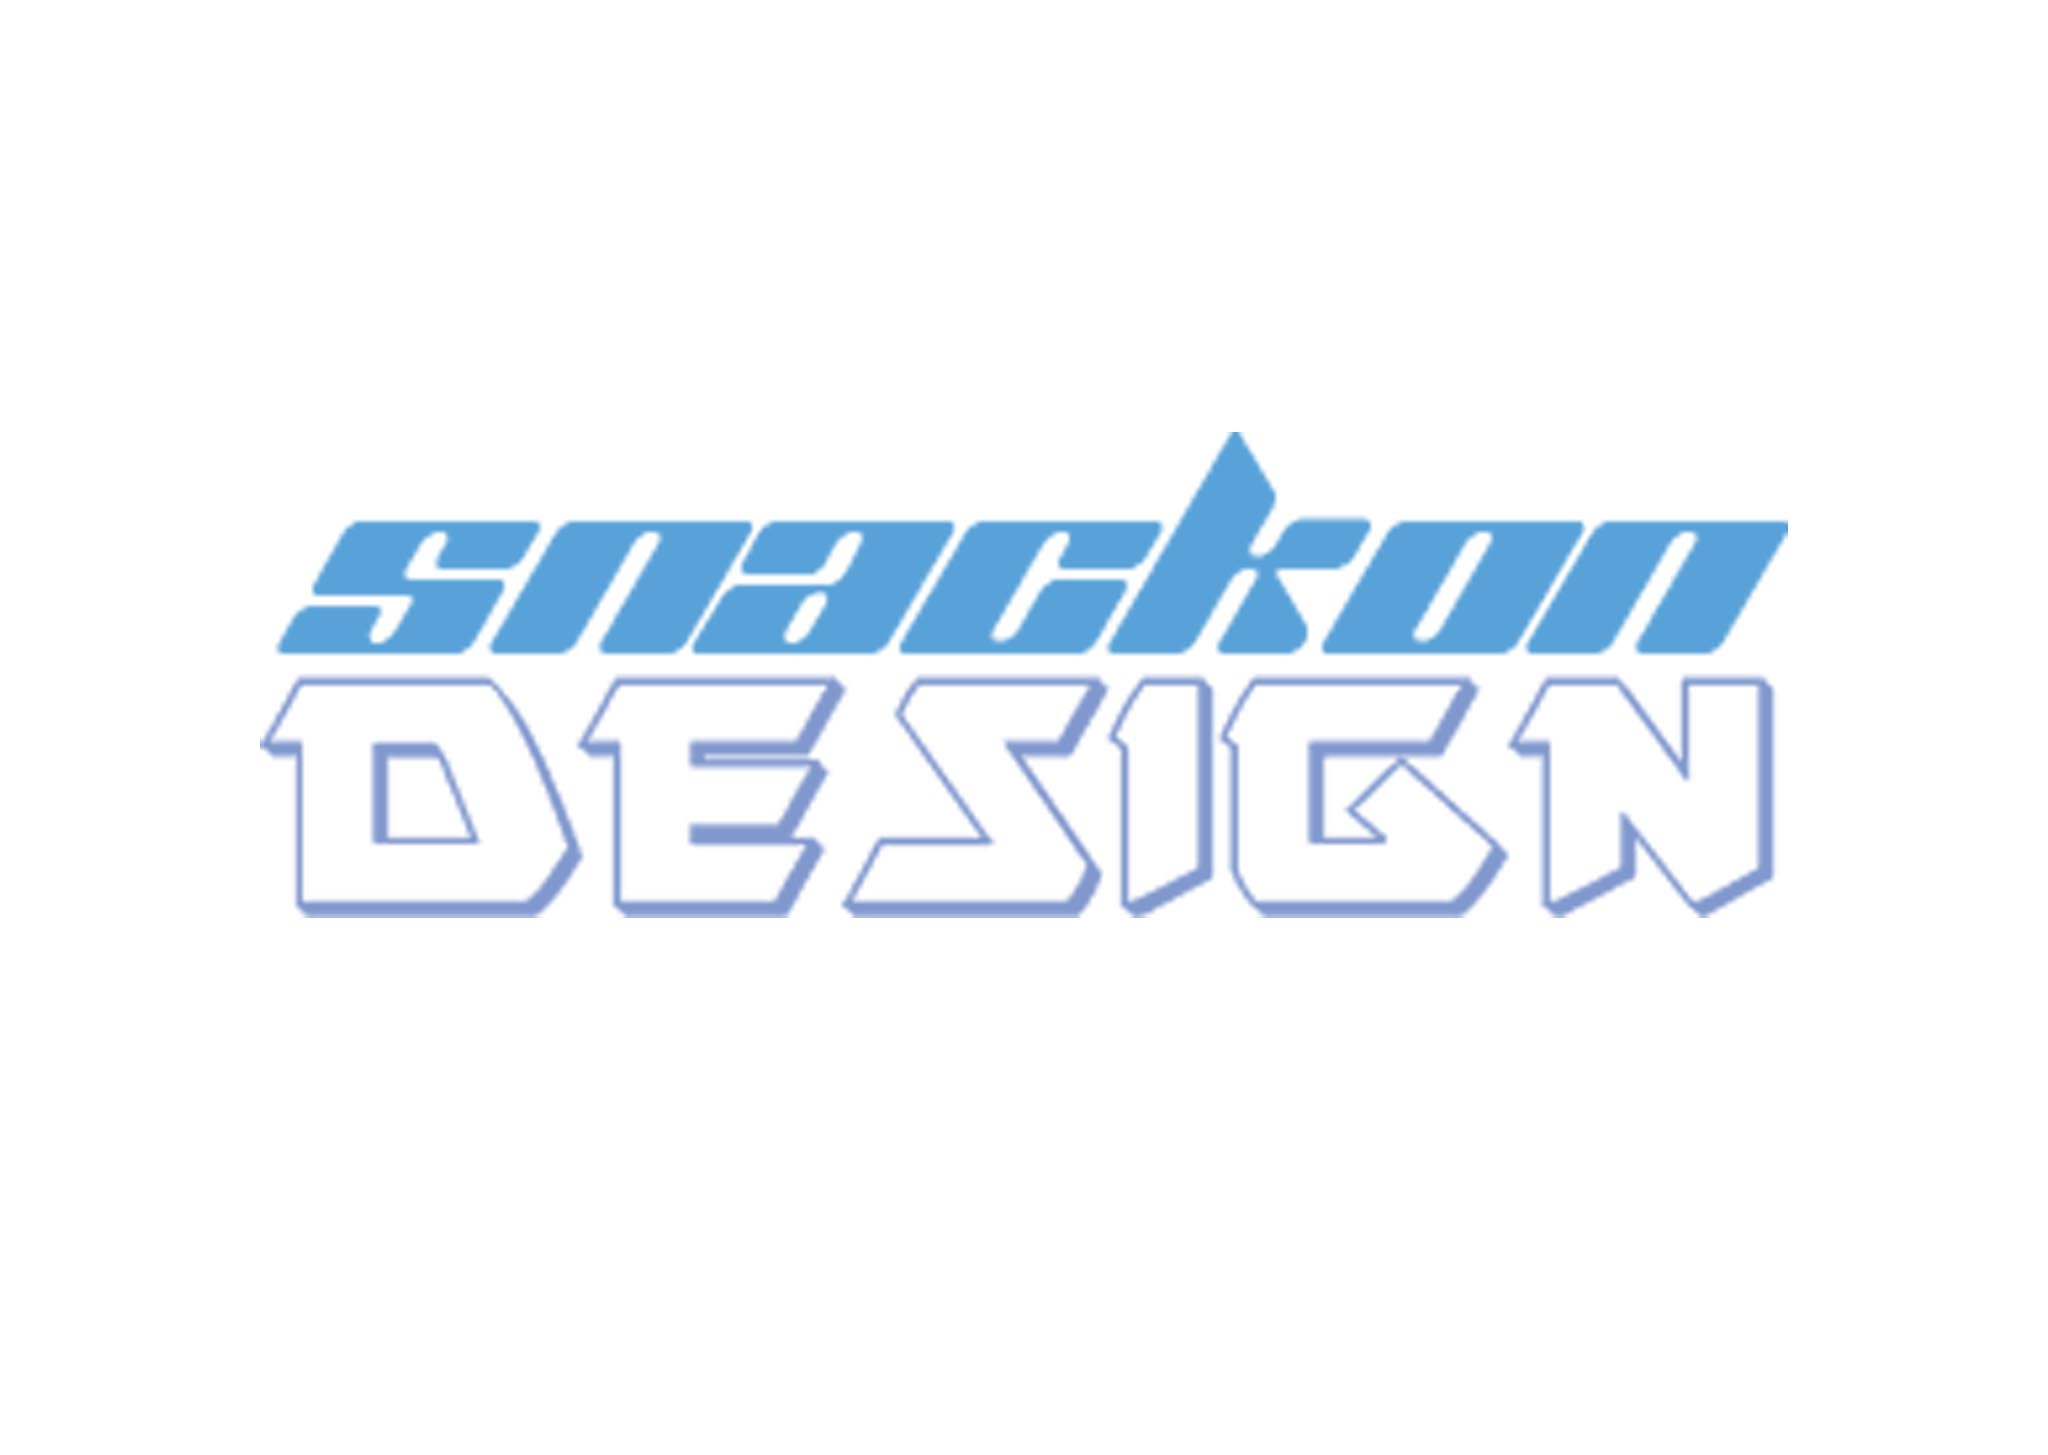 https://www.snackondesign.com/wp-content/uploads/2018/06/SnackON-Design.jpg